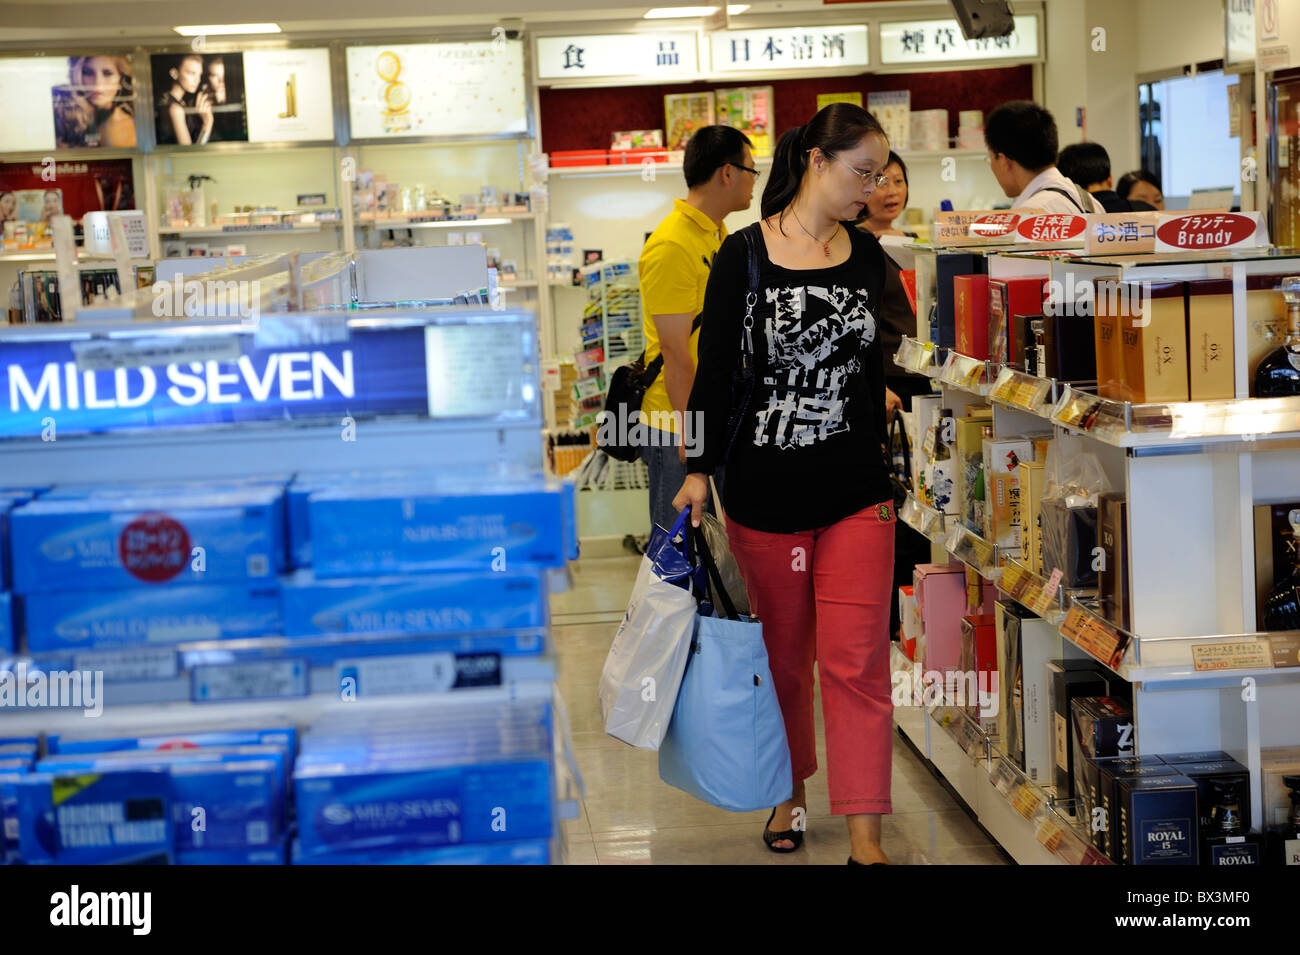 Chinese tourists shopping at duty free shop in Kansai international airport in Japan. 22-Sep-2010 - Stock Image